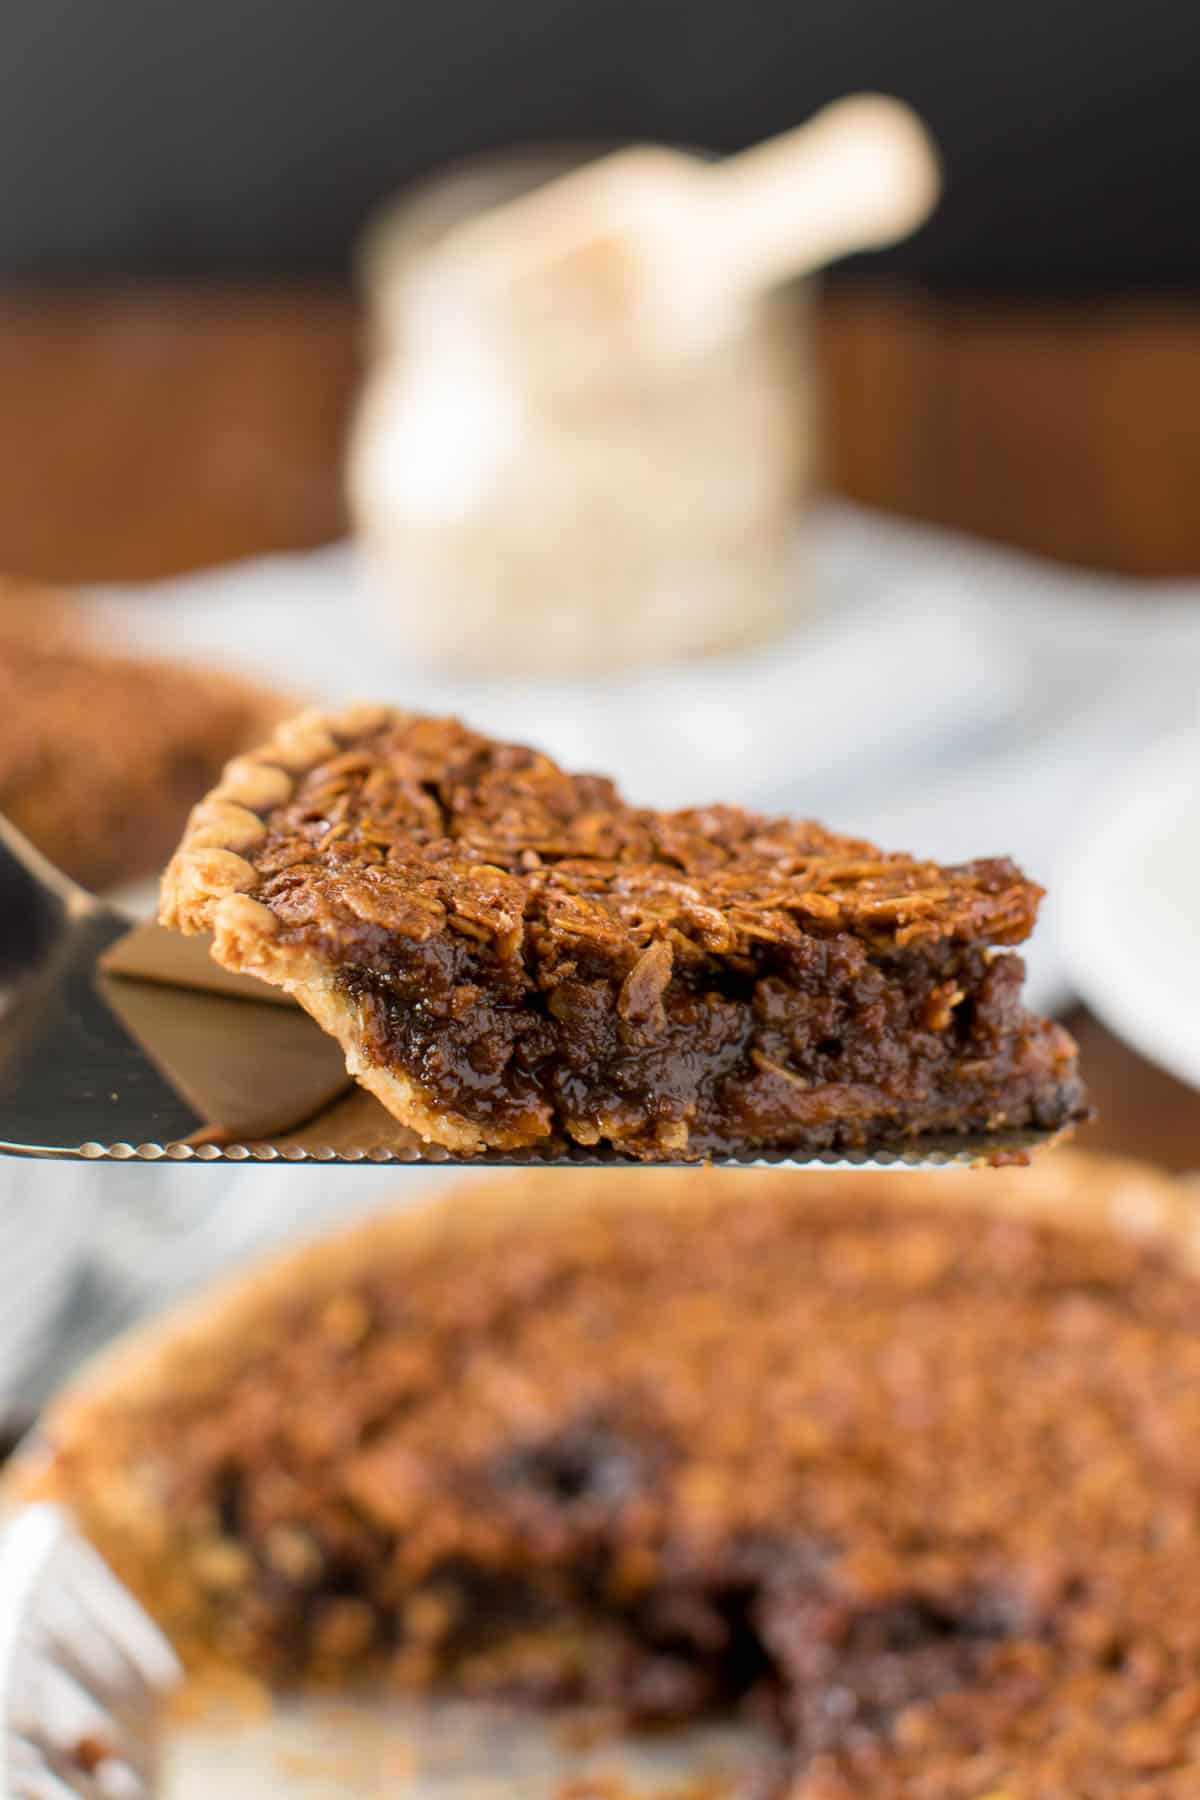 Oatmeal Pie - Old-fashioned dessert alert! A sweet, decadent pie topped with crunchy oats.